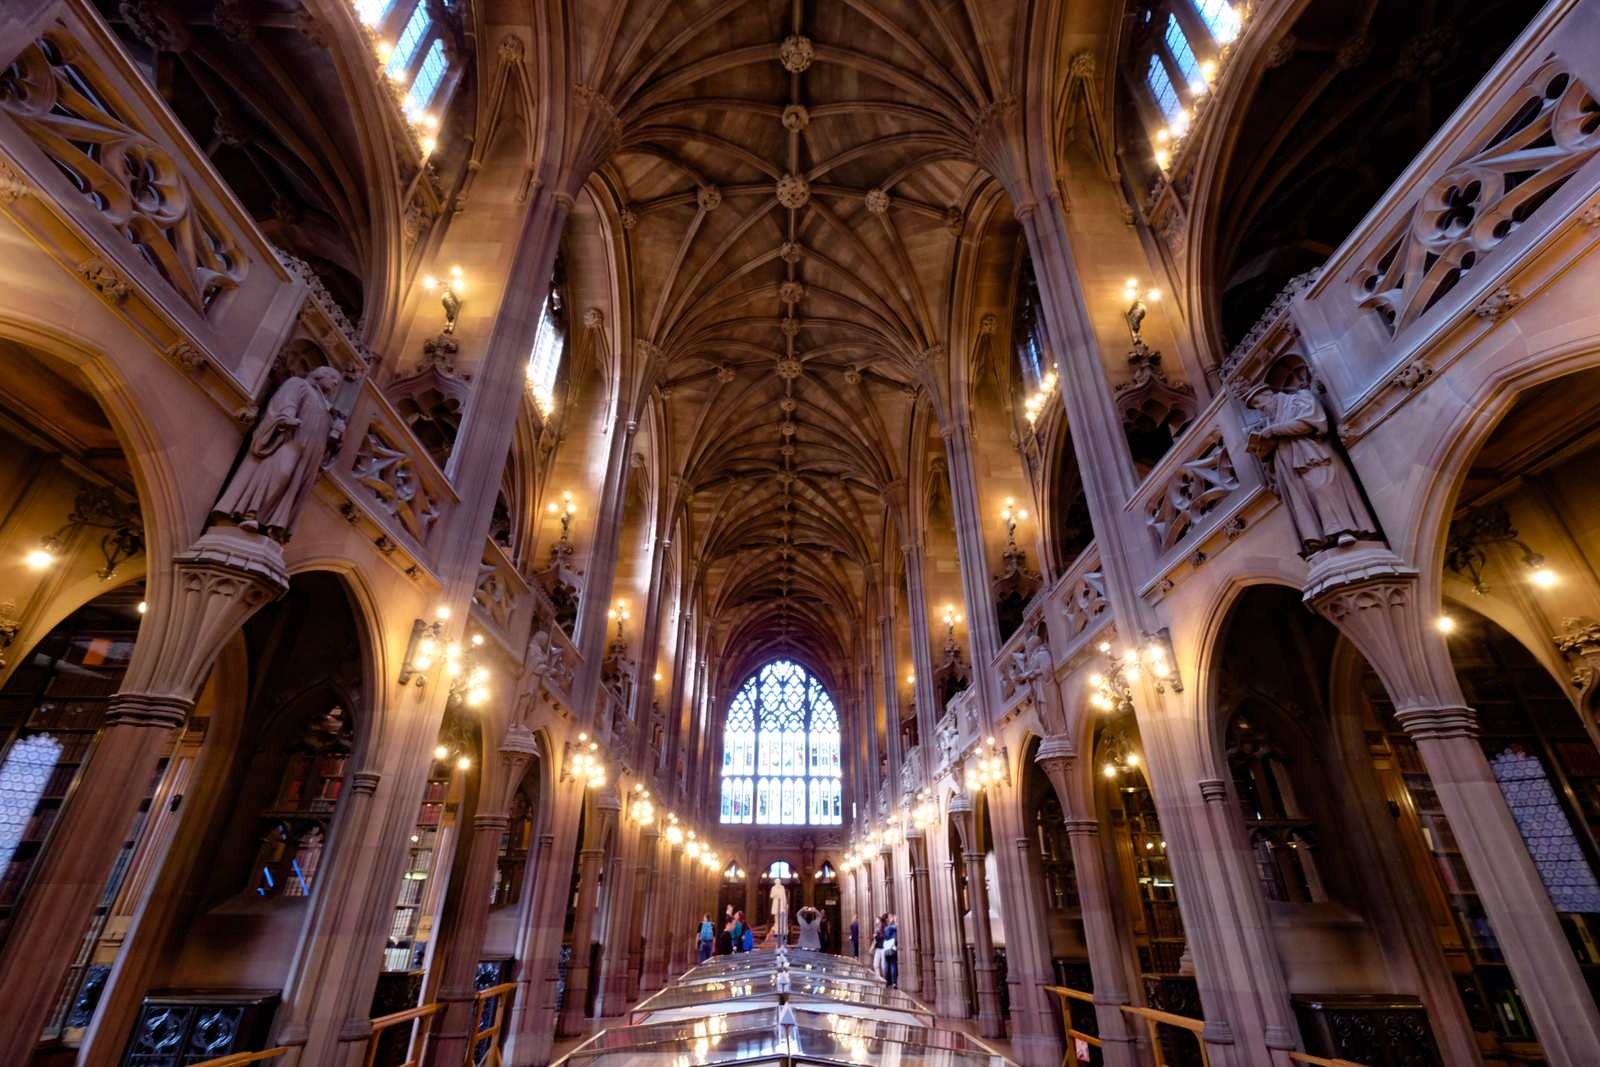 The John Rylands Library is one of many standout sights in Manchester, England. - JIM BYERS PHOTO